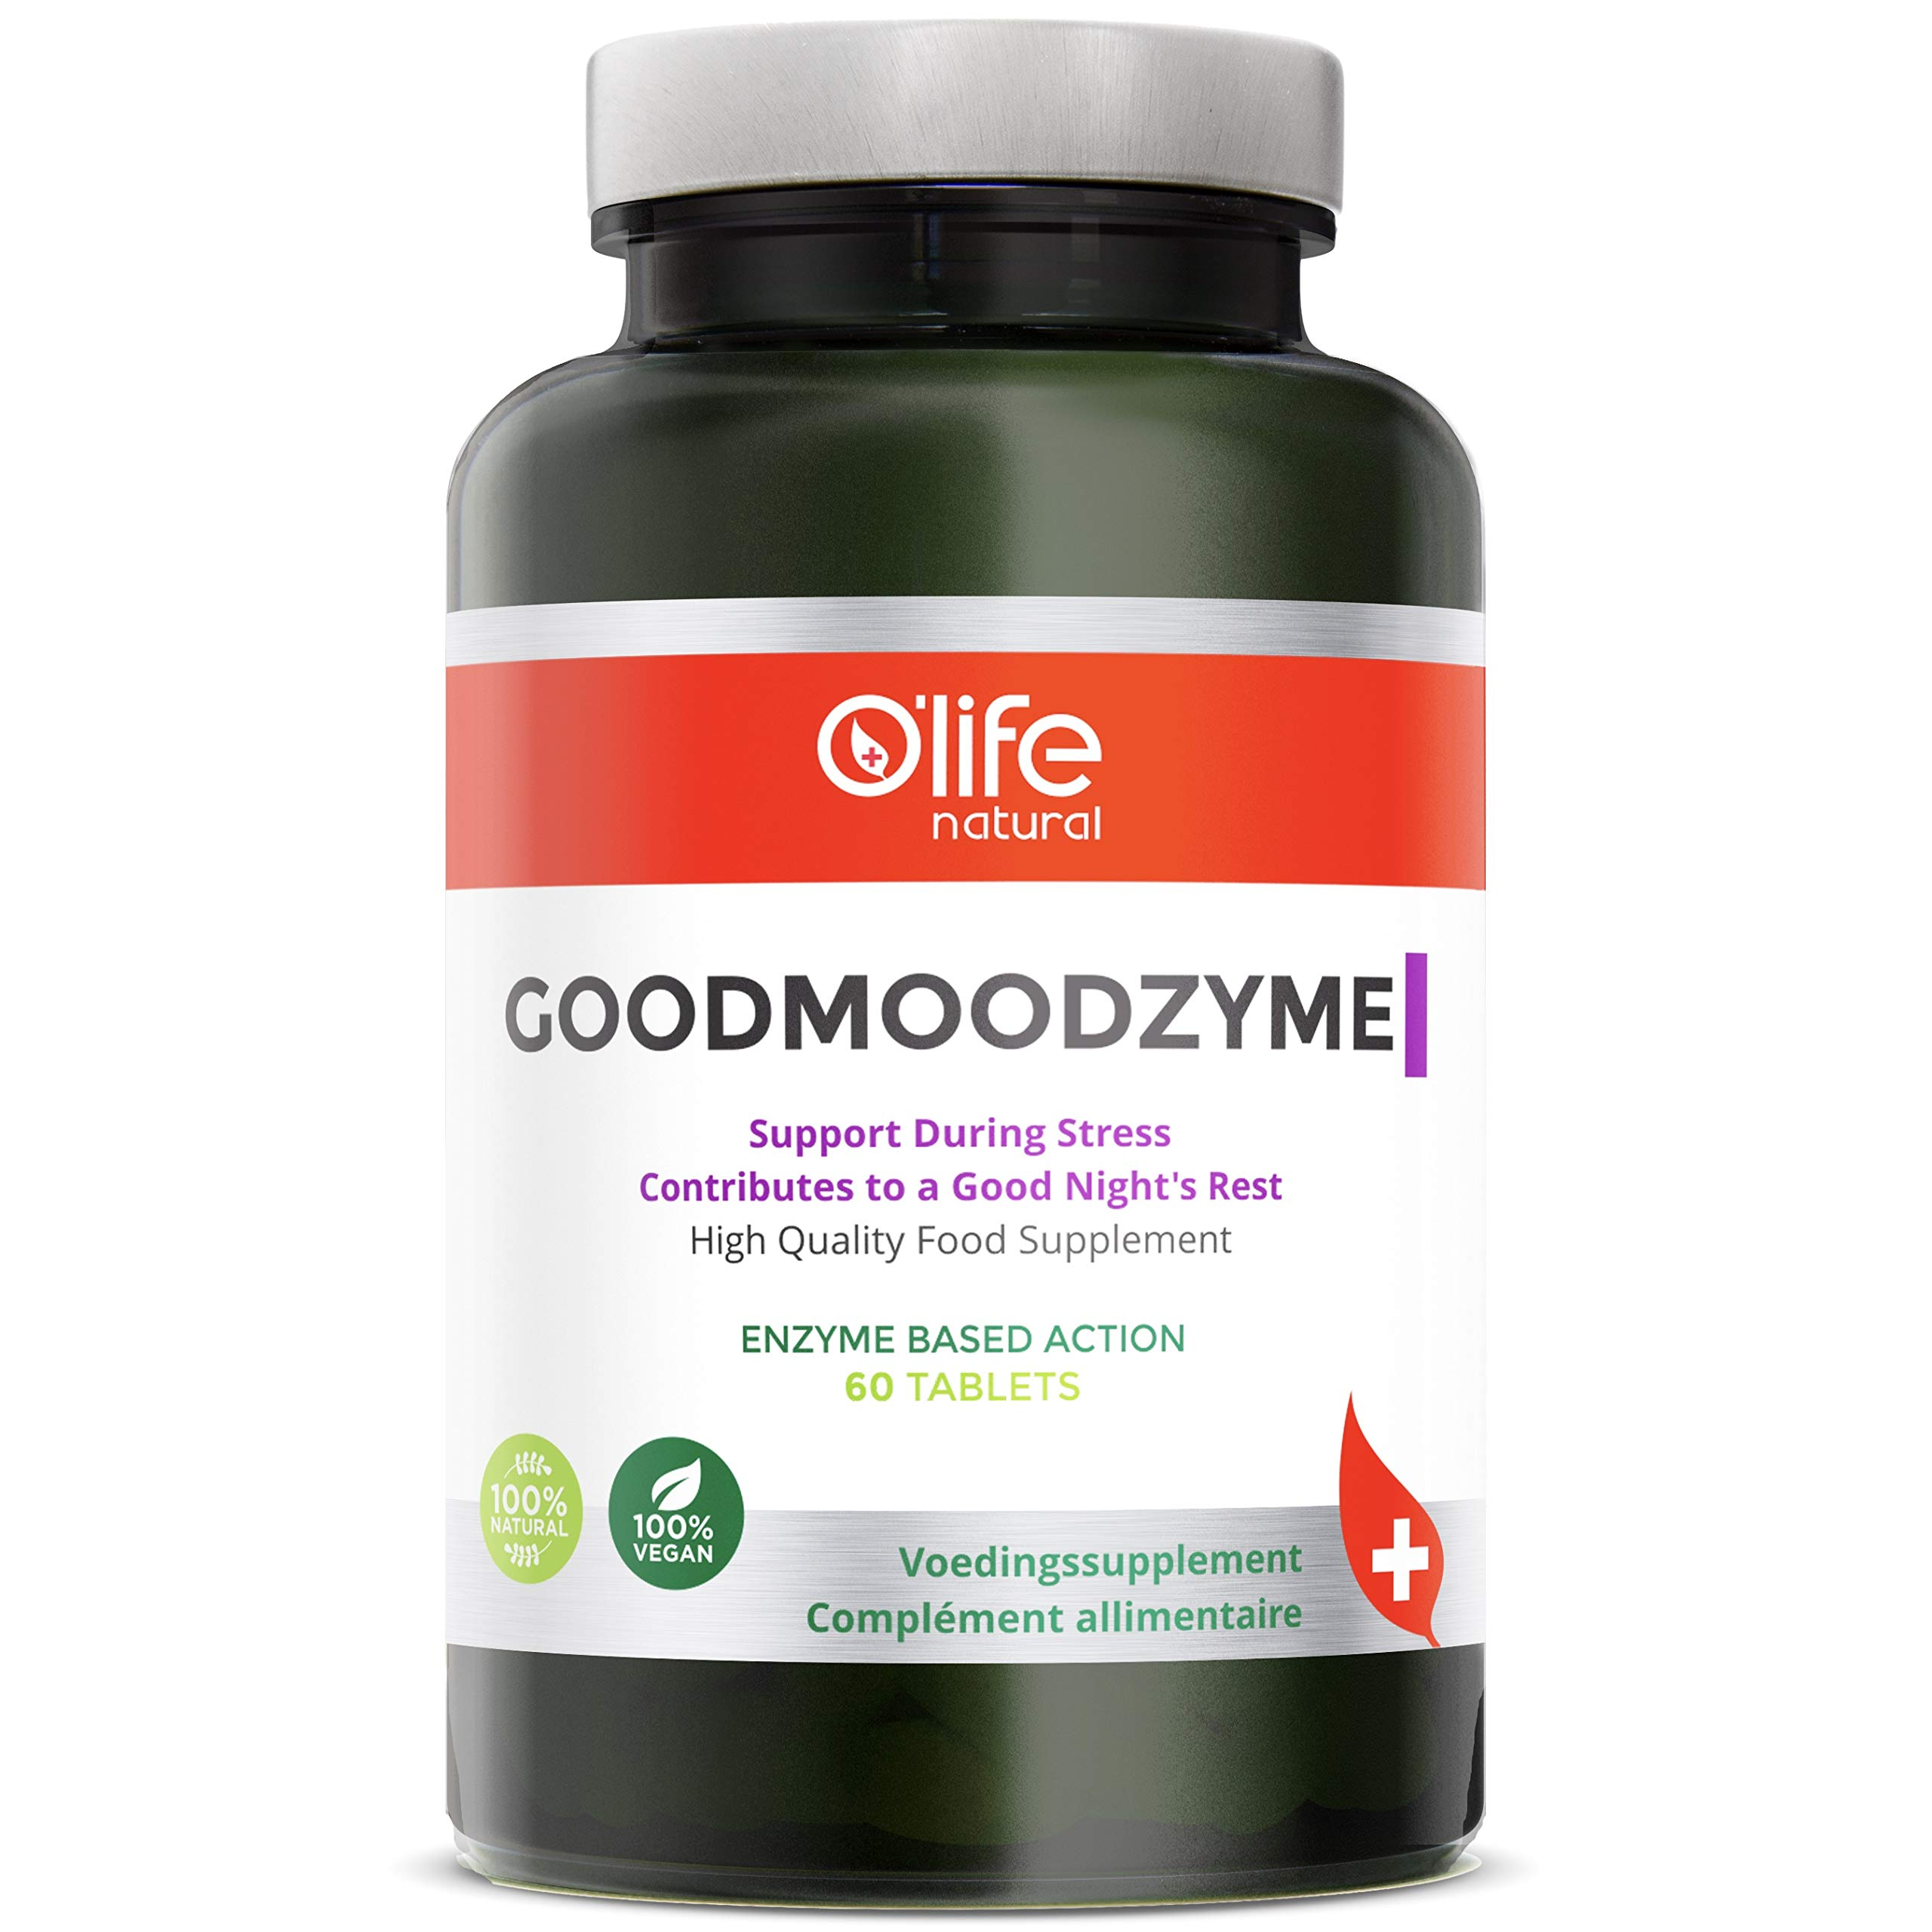 O'Life Natural's GOODMOODZYME - Advanced Formula with Ashwagandha, L-Theanine, Ginkgo Biloba & Digestive enzymes for Brain Power, Focus, Memory Clarity, Stress & Anxiety & Insomnia Relief